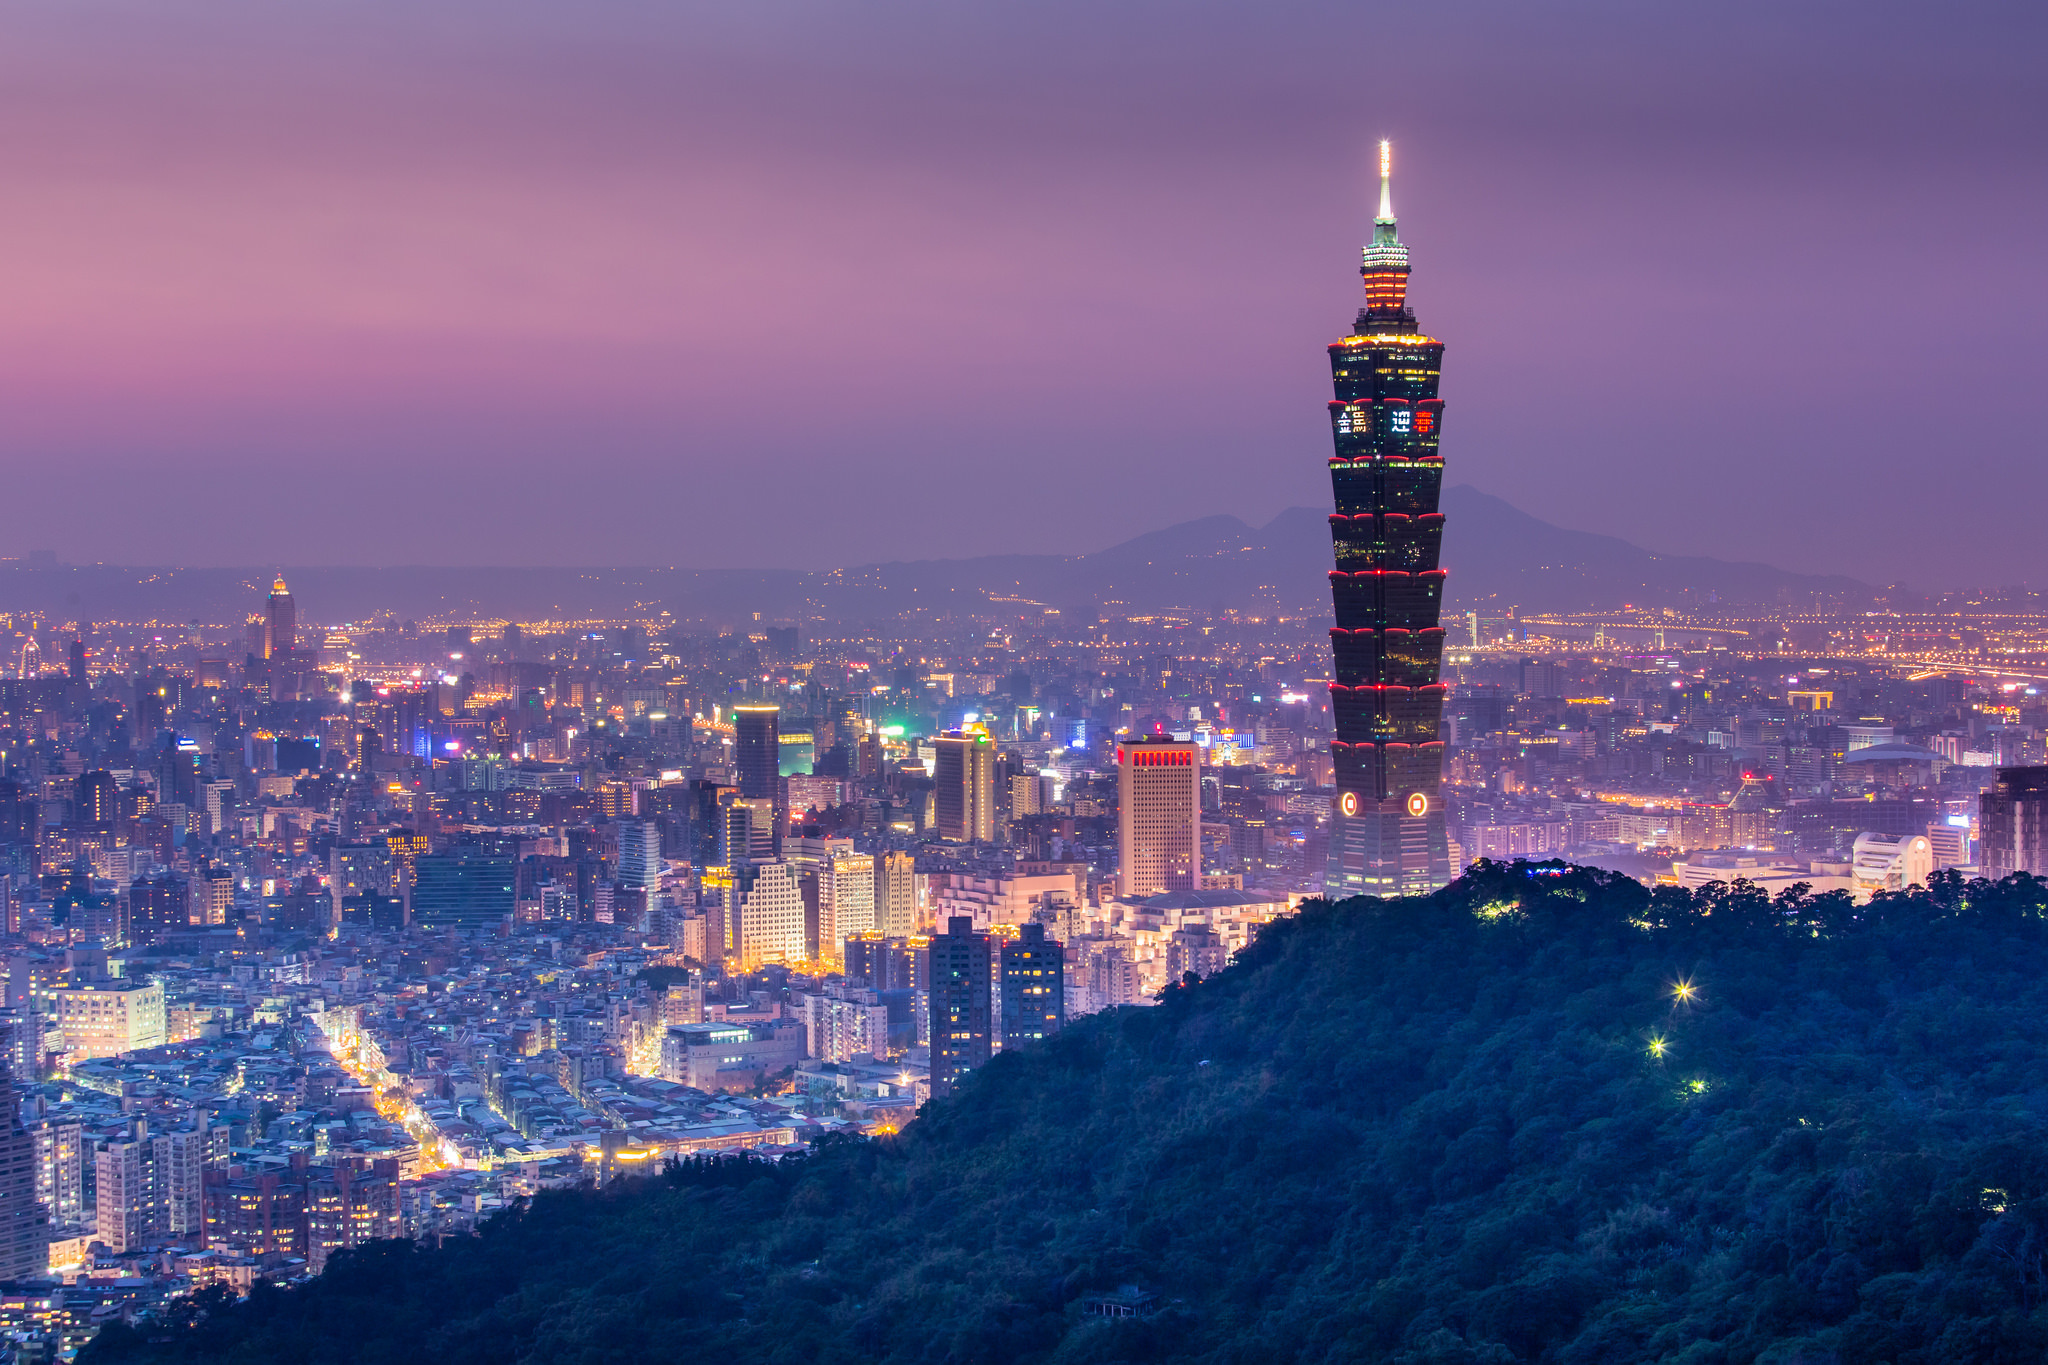 20 taipei 101 hd wallpapers | background images - wallpaper abyss